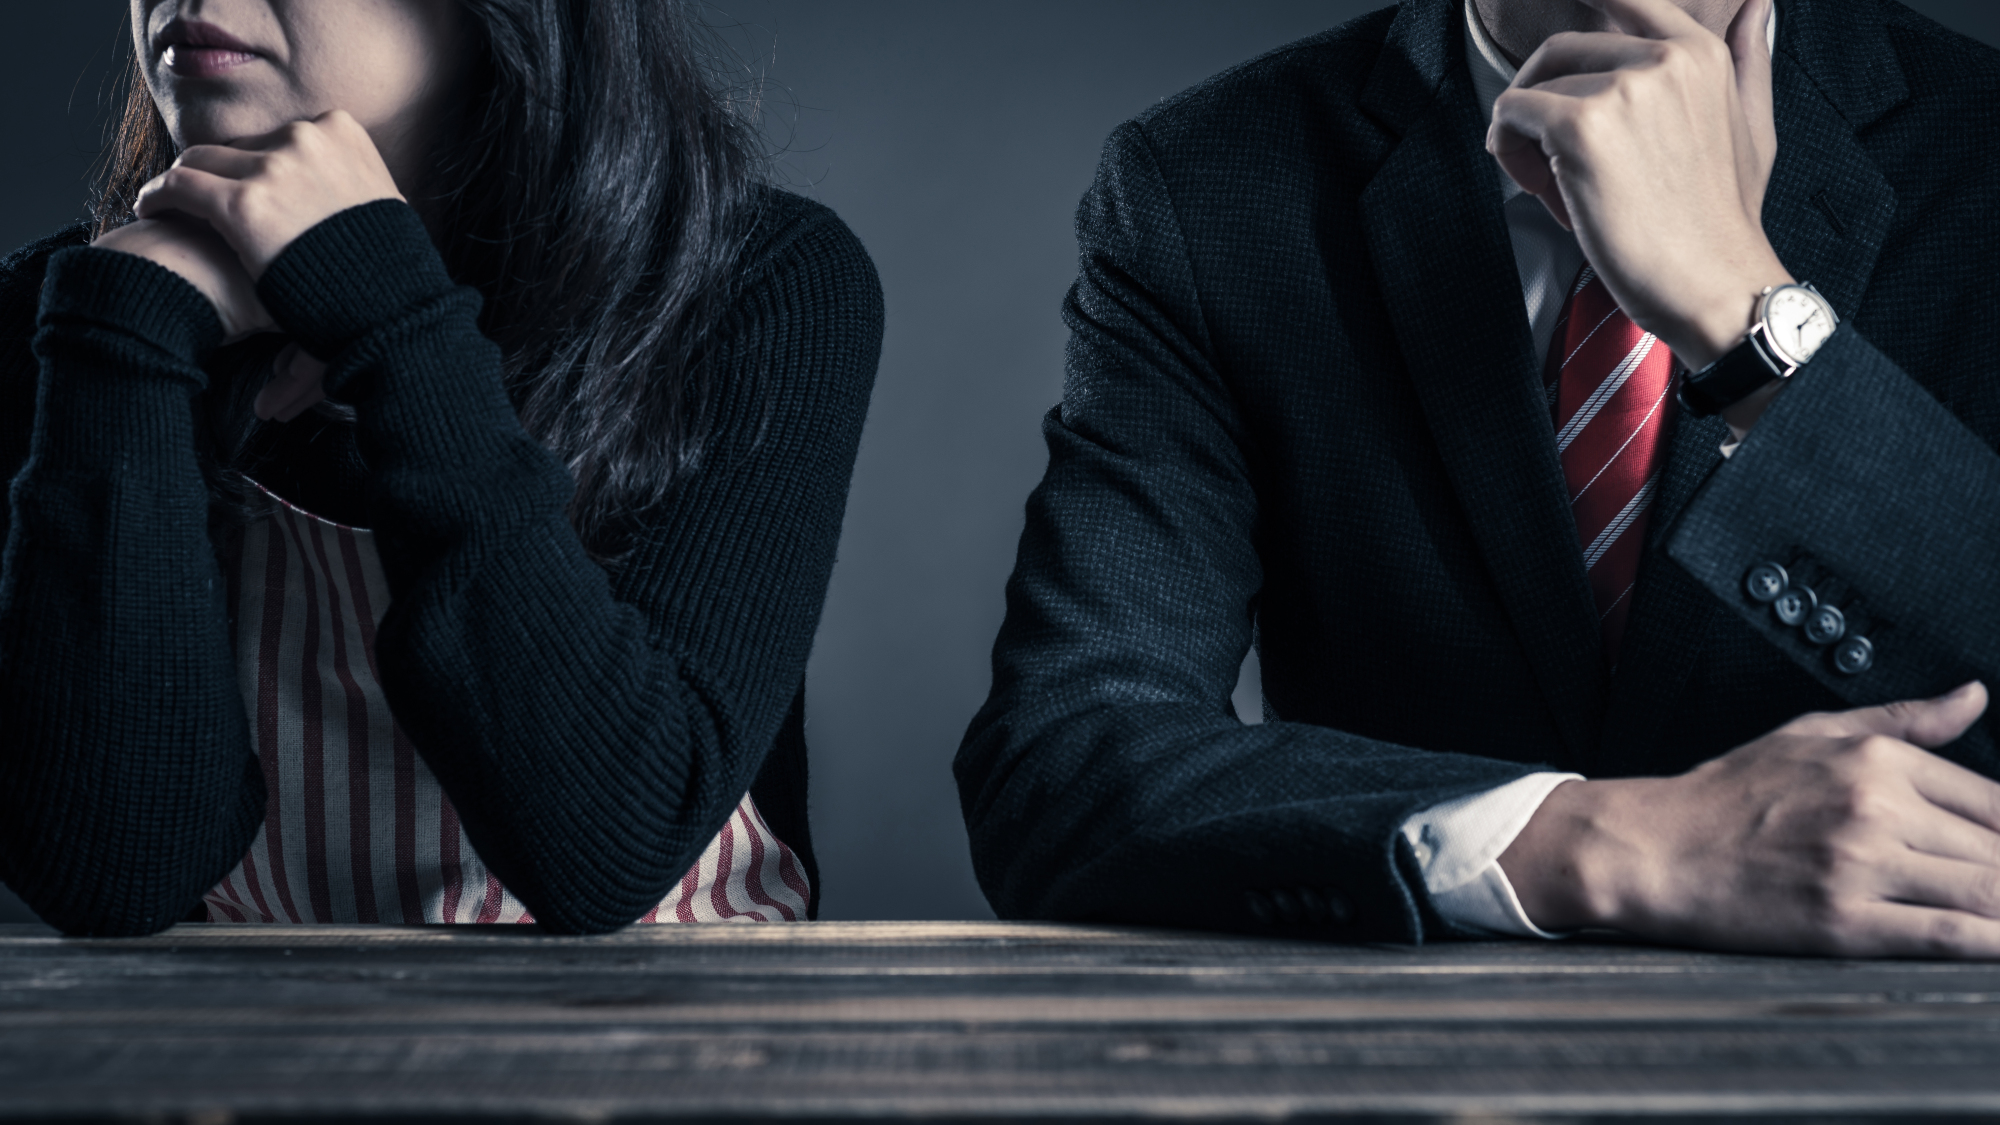 Chill in the air: One salaryman laments the changes the #MeToo movement has had on relationships between men and women in his workplace.   GETTY IMAGES